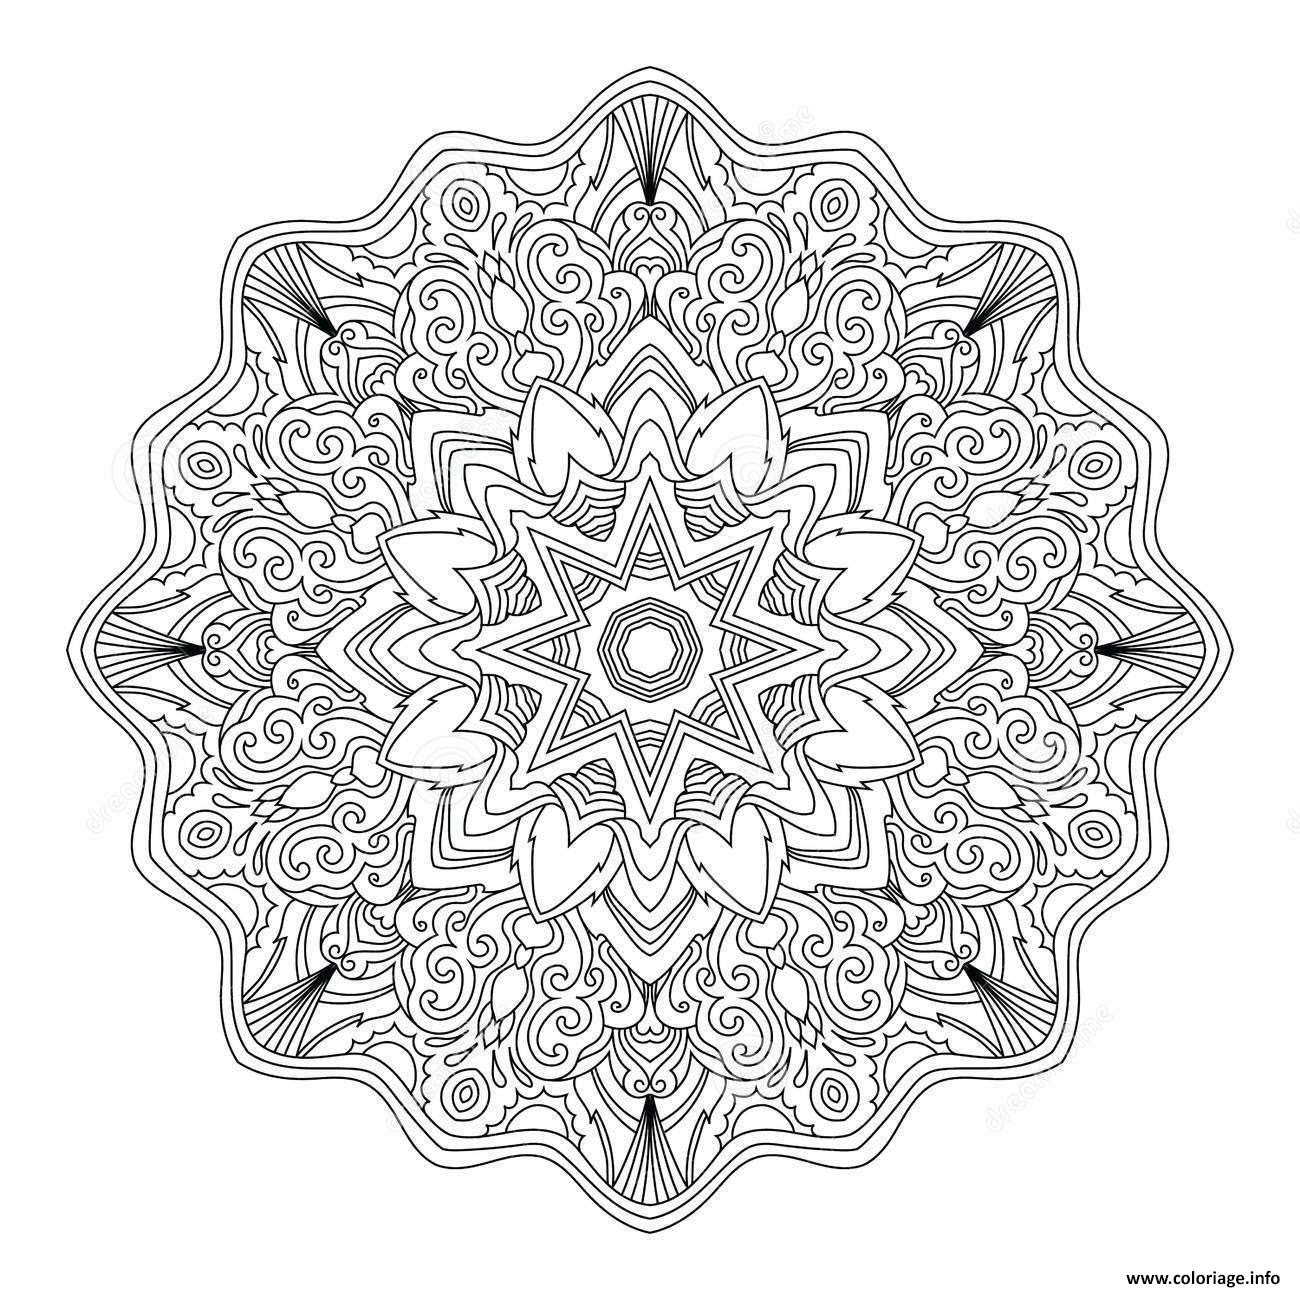 Coloriage Mandala Adulte Abstrait Art Therapie Jecoloriecom